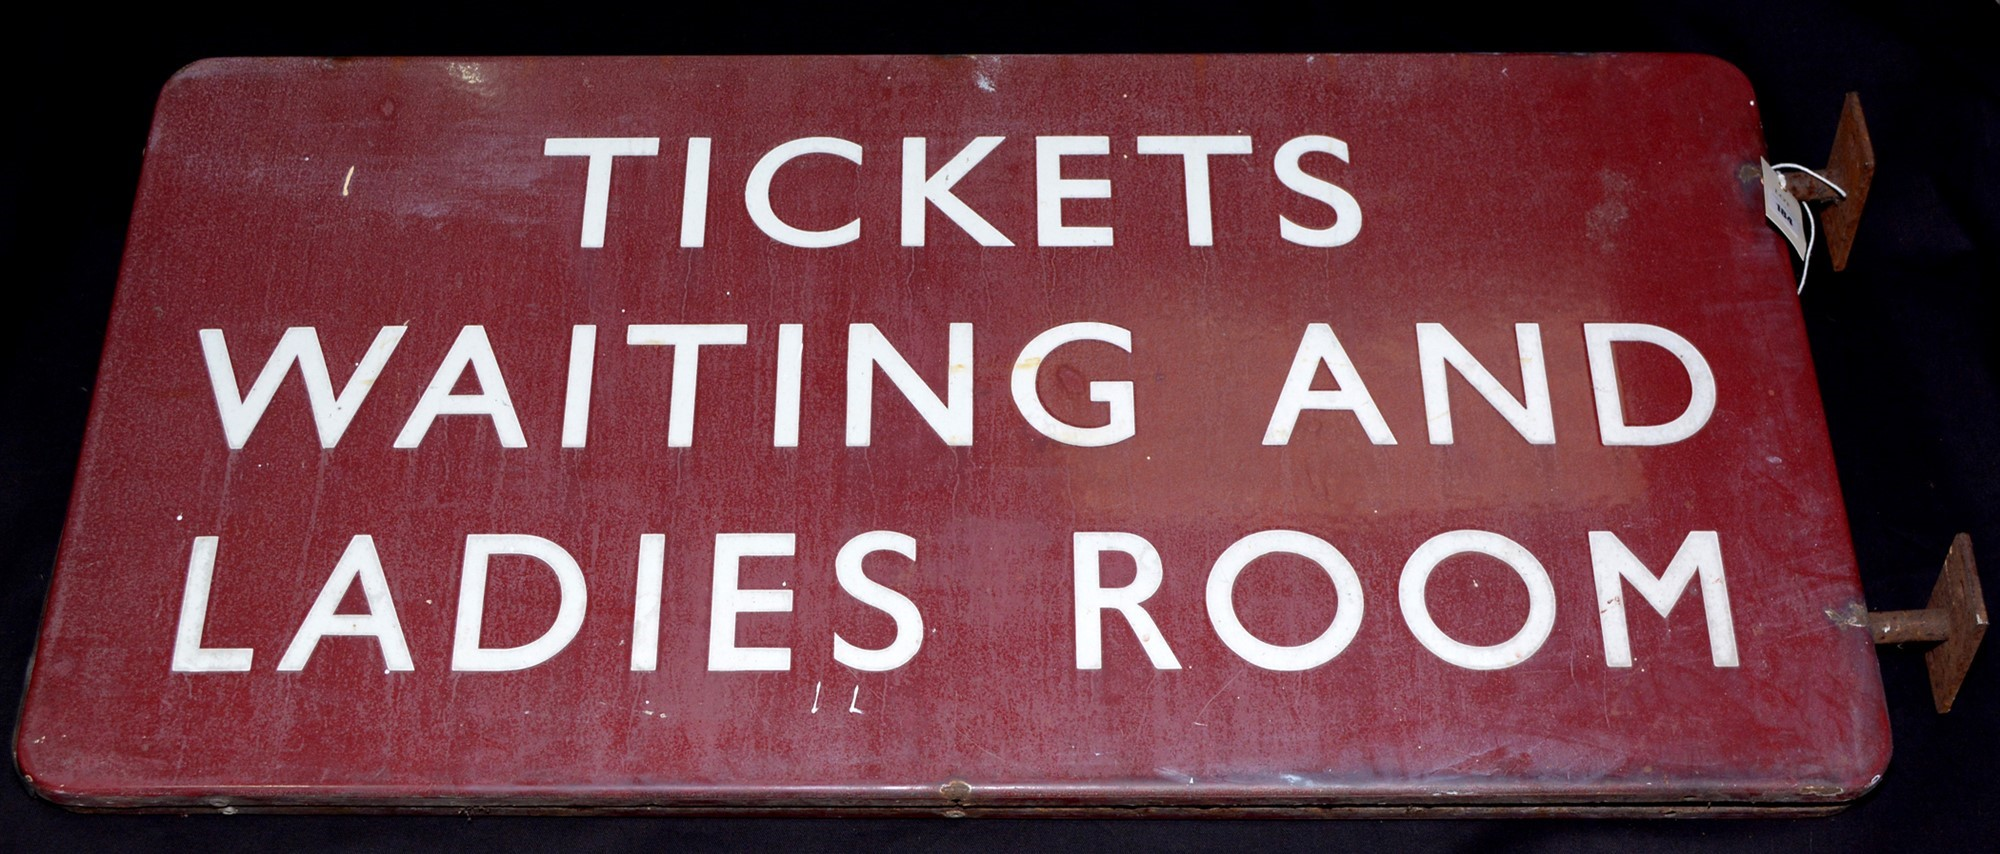 "Midland railways enamel sign inscribed ""Tickets waiting and ladies room"", double sided,"